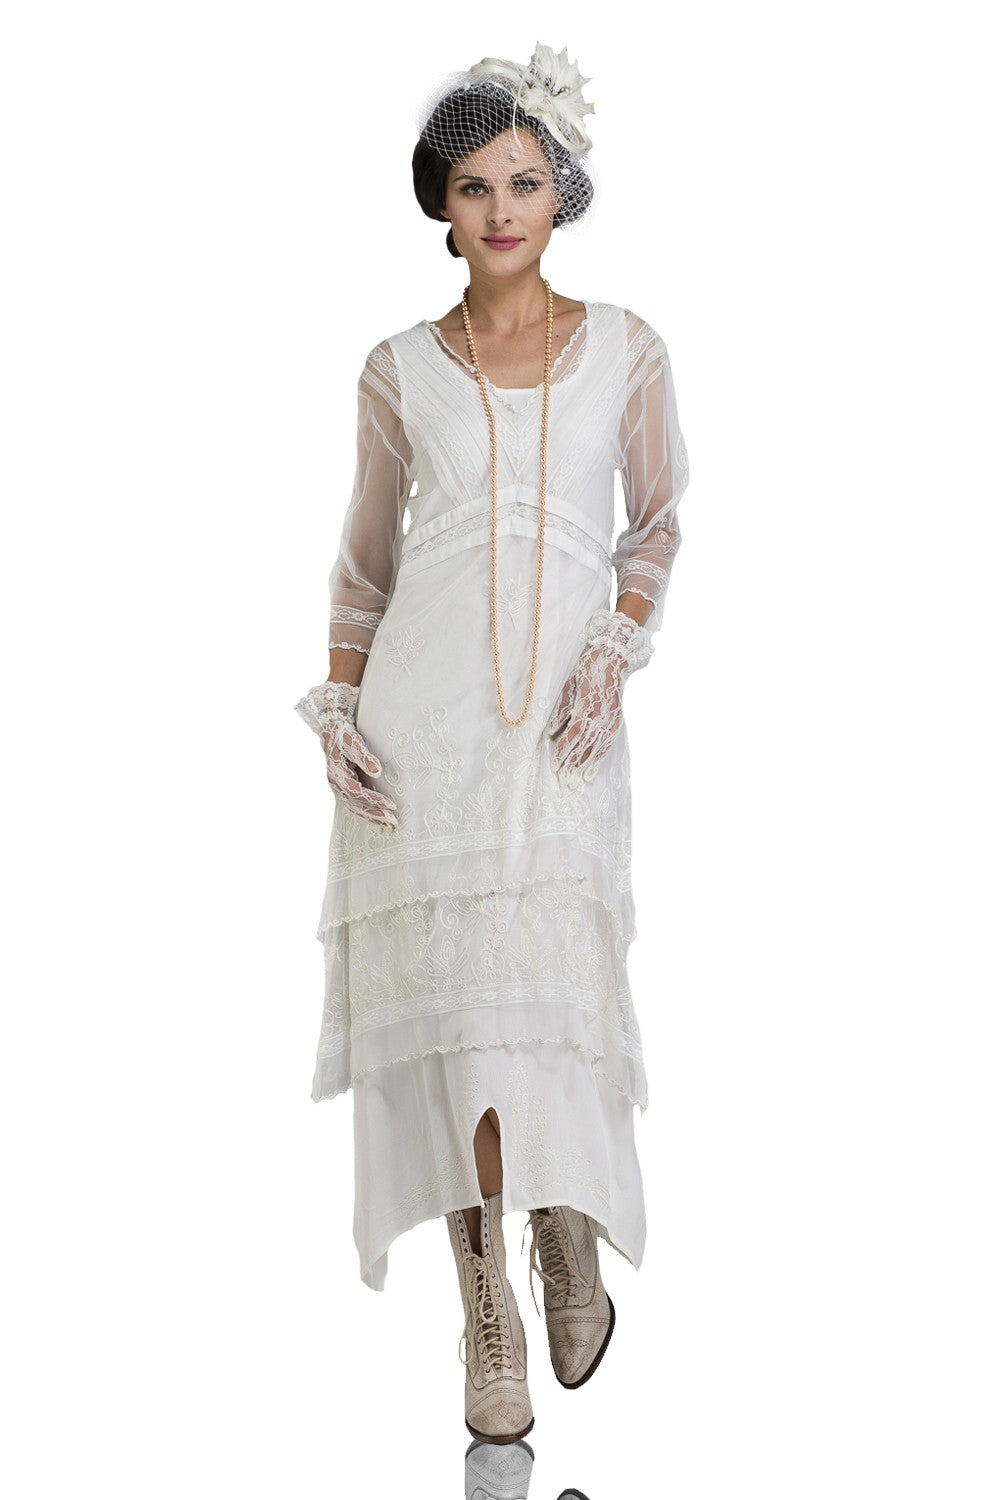 1920s Fashion & Clothing | Roaring 20s Attire Vintage Titanic Tea Party Dress in Ivory by Nataya $228.00 AT vintagedancer.com